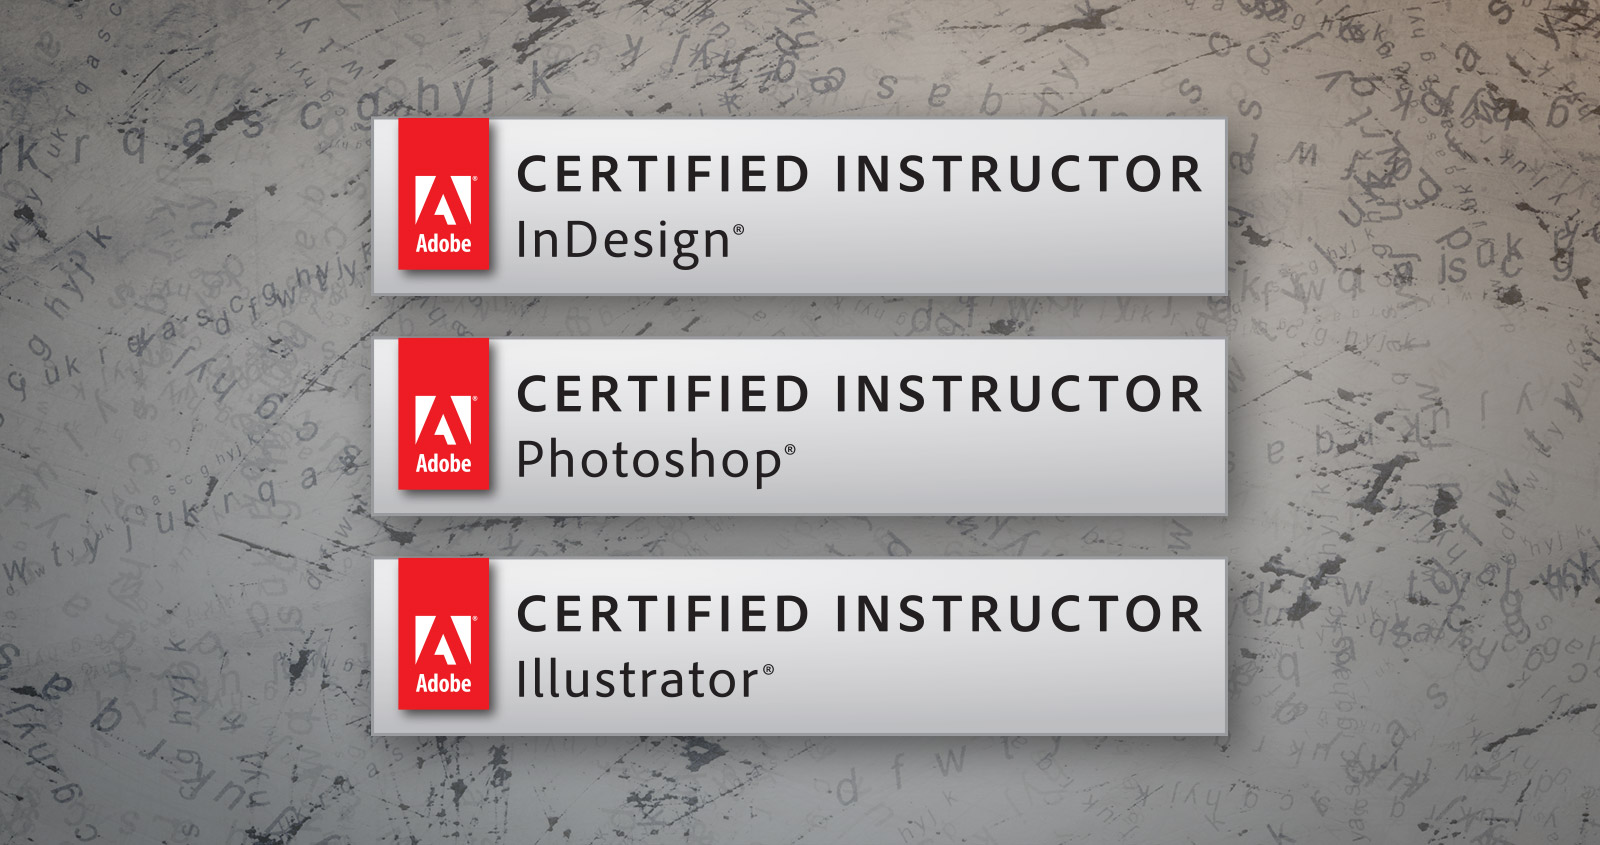 Adobe Certified Instructor (ACI) badges.